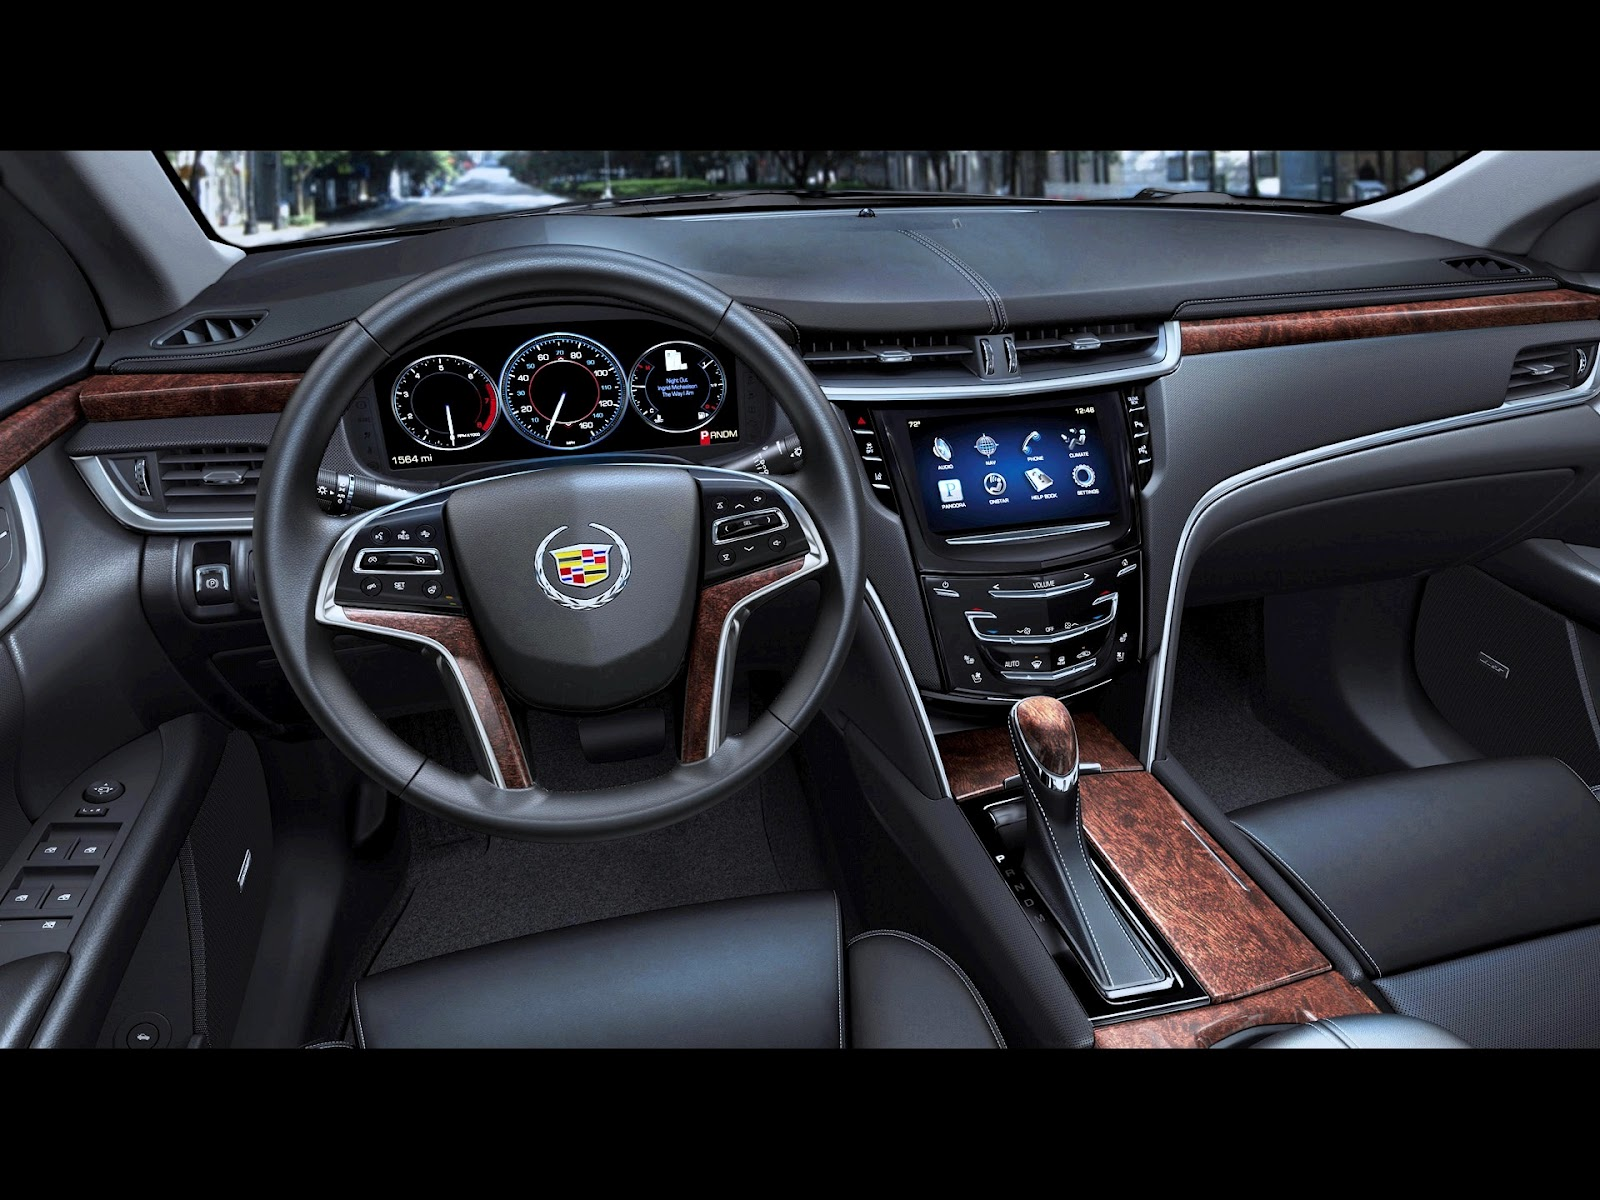 2013 Cadillac Xts Luxury Sedan News Hot Car